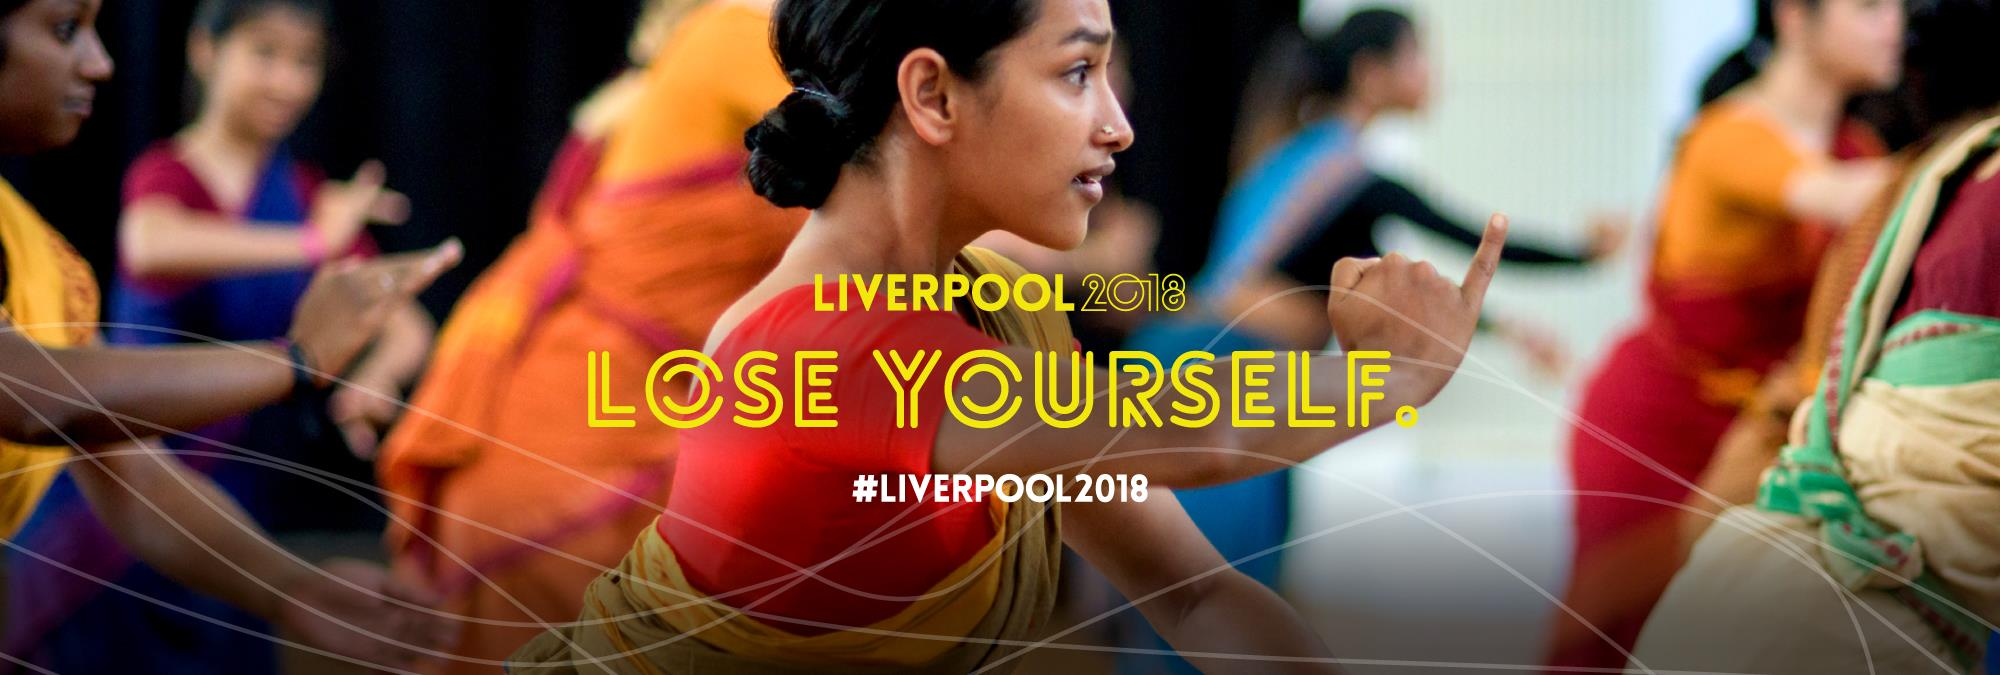 Lose yourself in Liverpool 2018